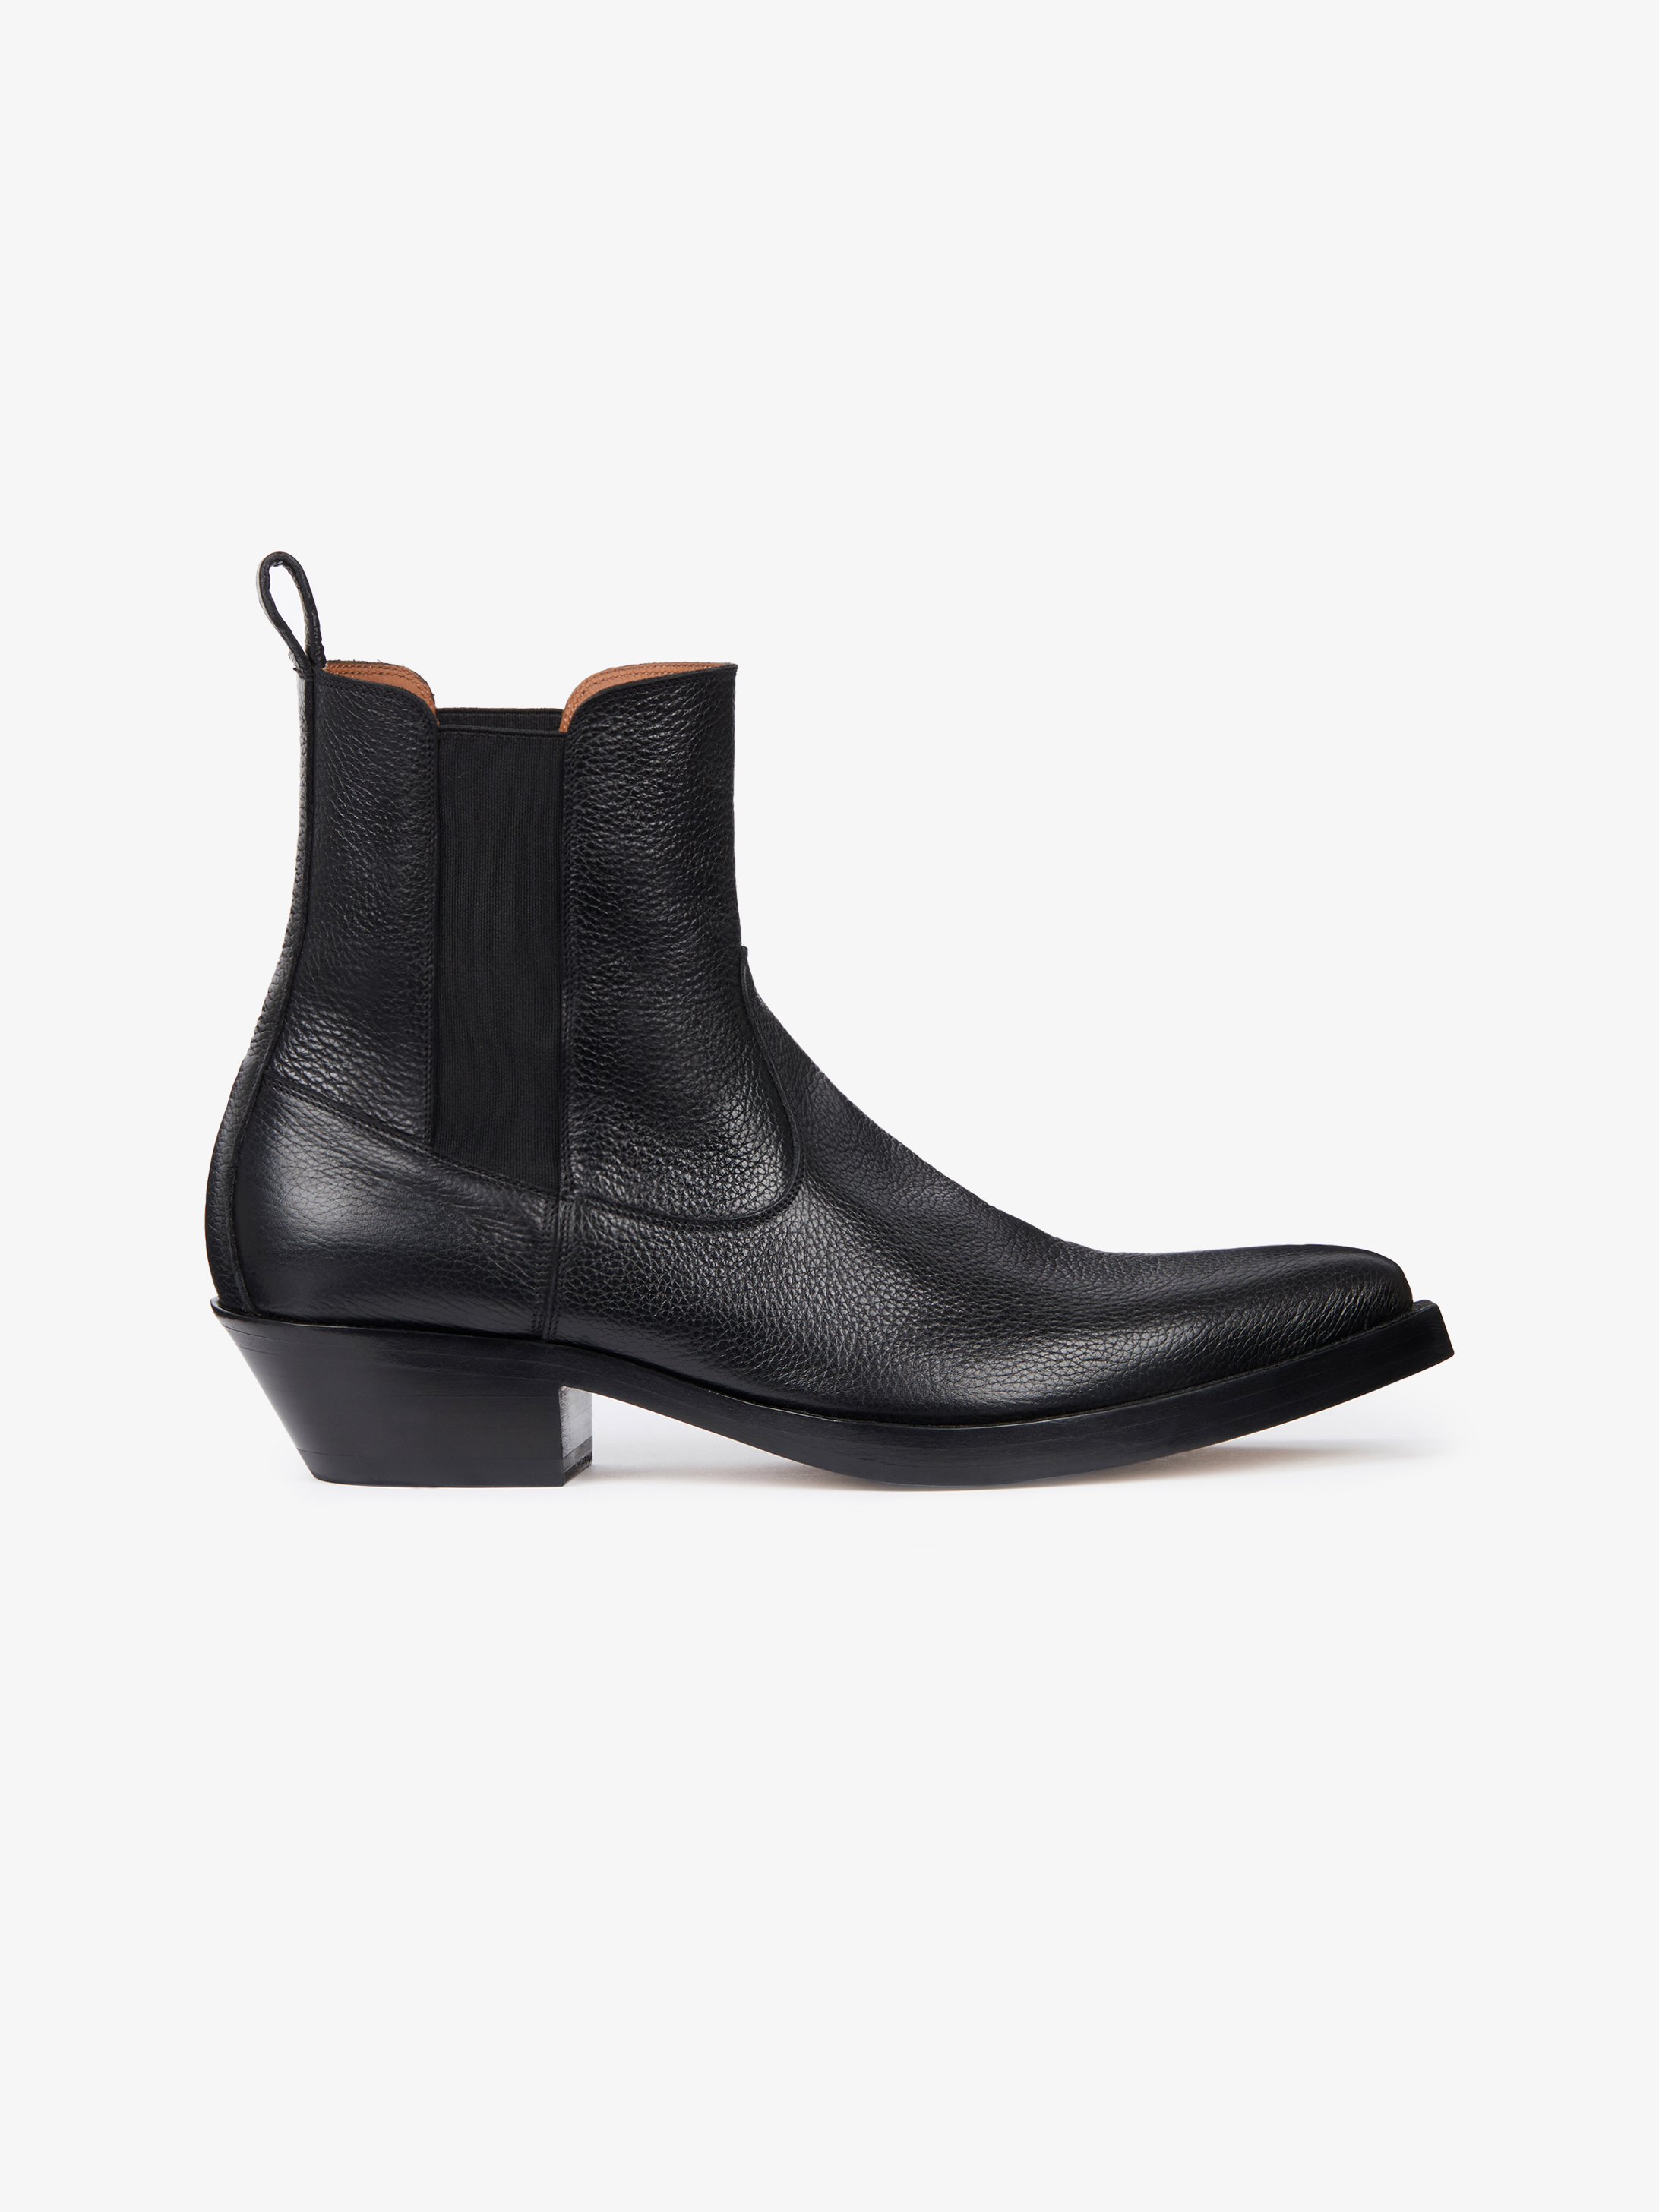 Cowboy boots in shinny grained leather